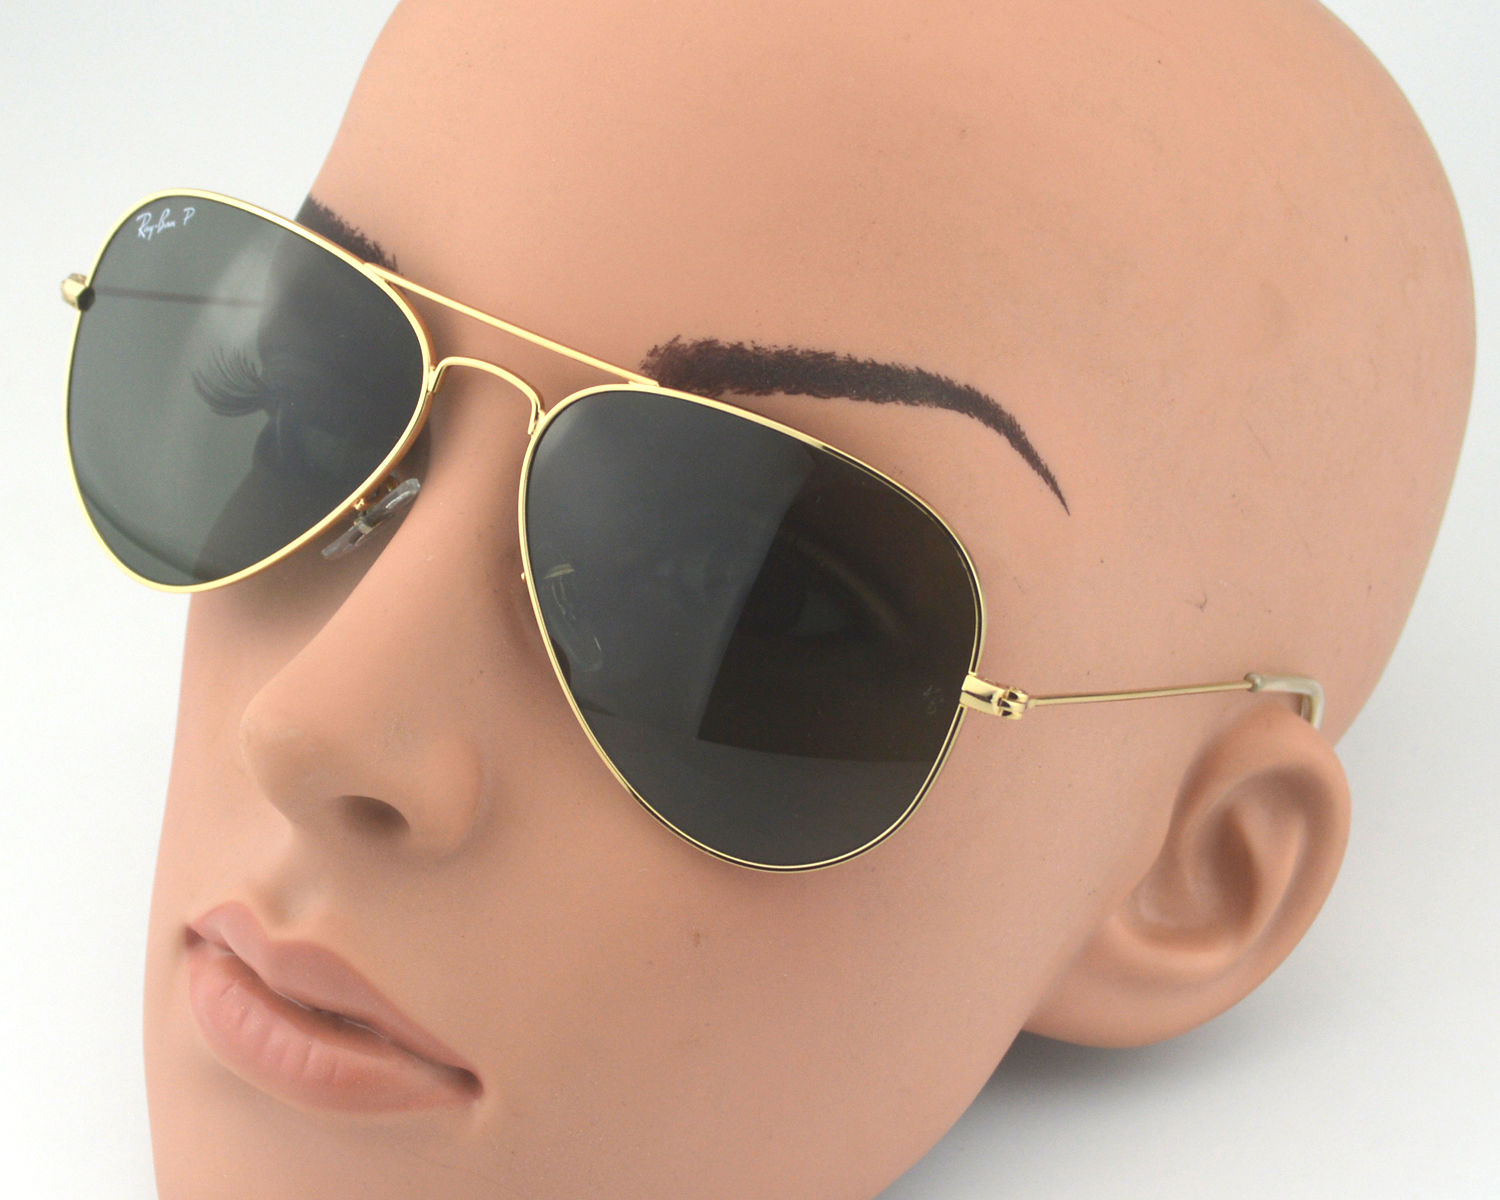 171a44ec5f Ray Ban RB3025 Aviator Classic 001 58 Gold Frame Polarized Green Classic  G-15 Lenses Unisex Sunglasses 58mm